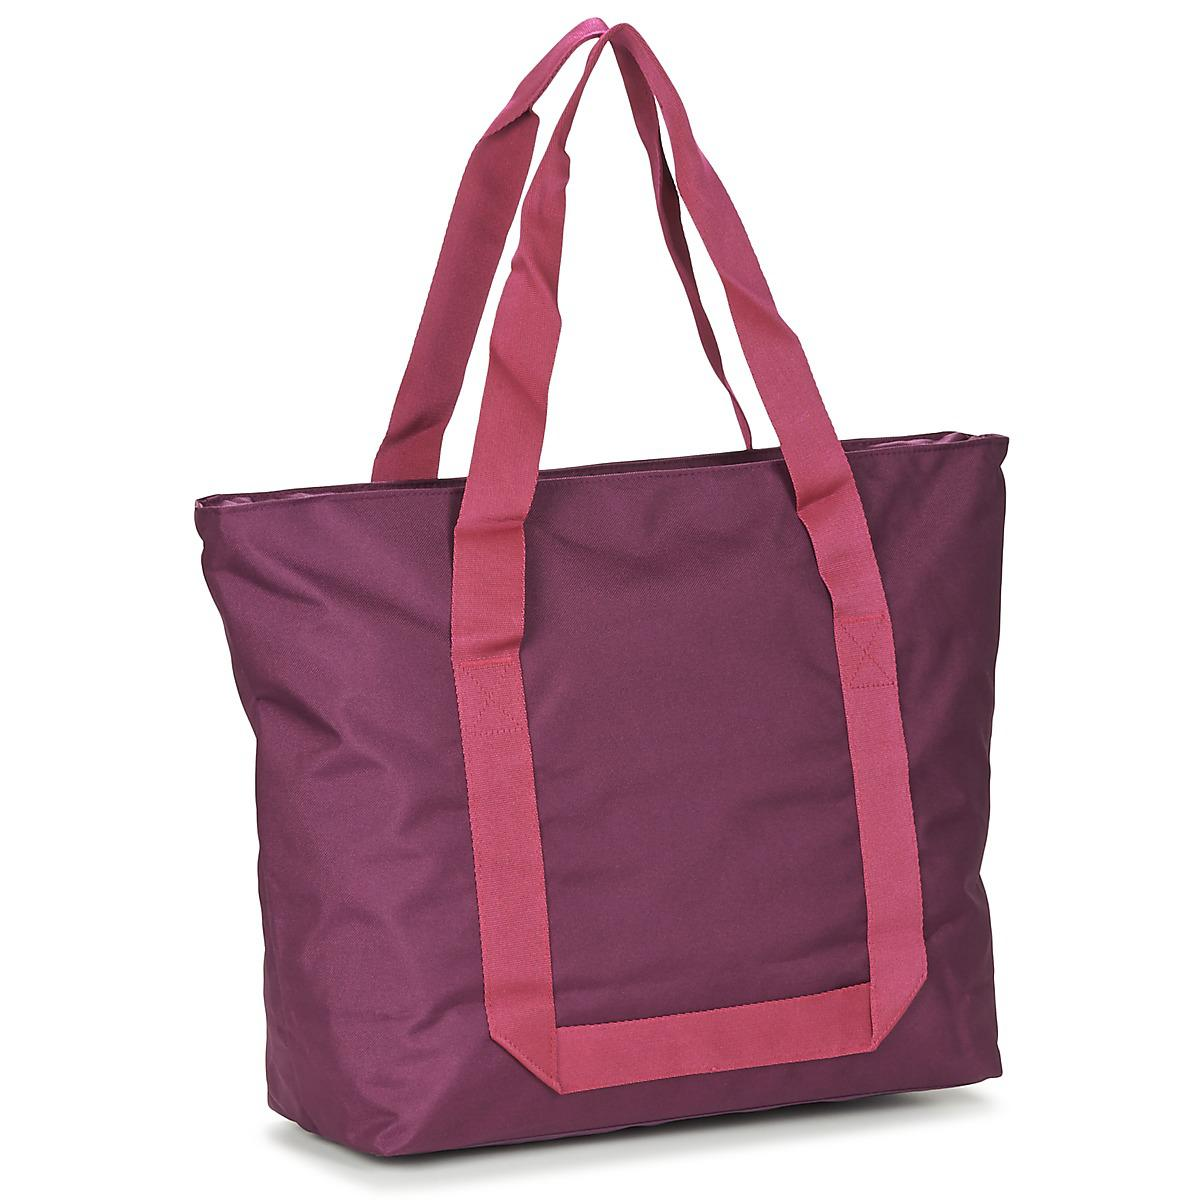 60903c6c62 adidas Good Tote Sol Women s Shopper Bag In Purple in Purple - Lyst